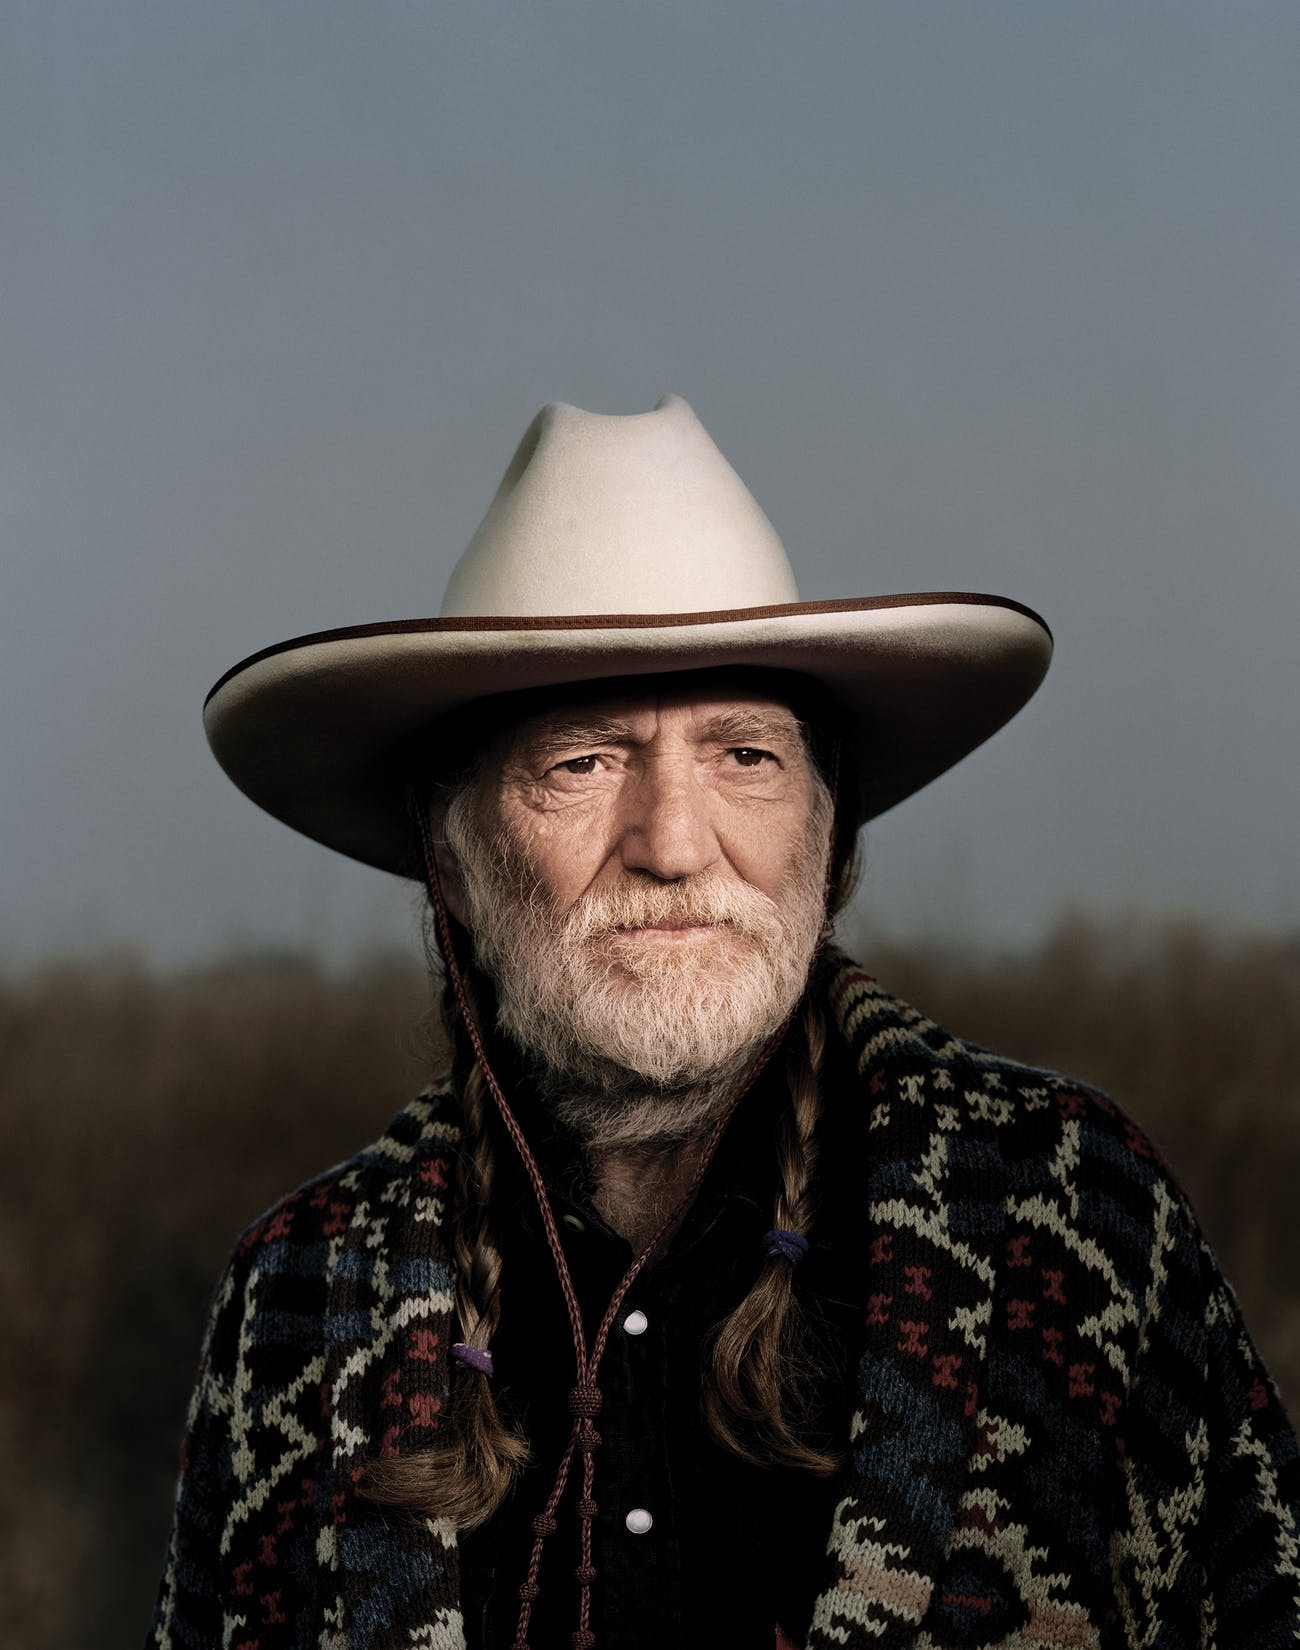 Willie Nelson outside of Buck Owens's Crystal Palace, in Bakersfield, California, in 1998.